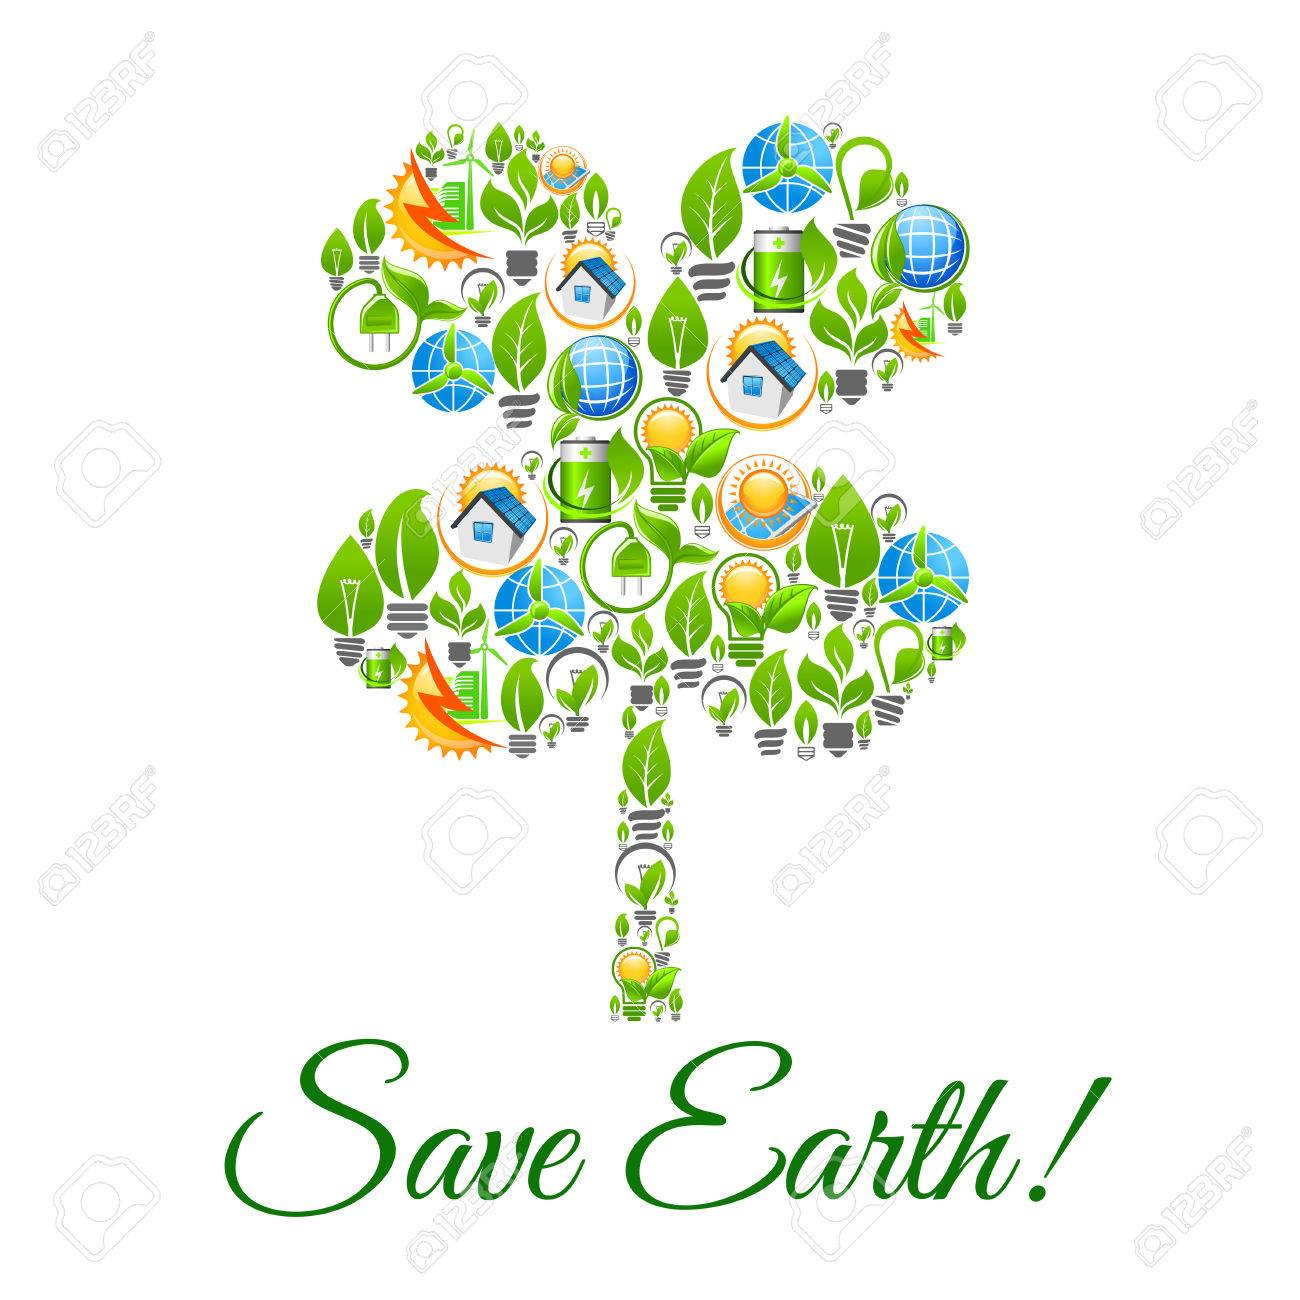 Save earth poster with clover leaf symbol ecology and nature save earth poster with clover leaf symbol ecology and nature conservation and pollution protection biocorpaavc Images